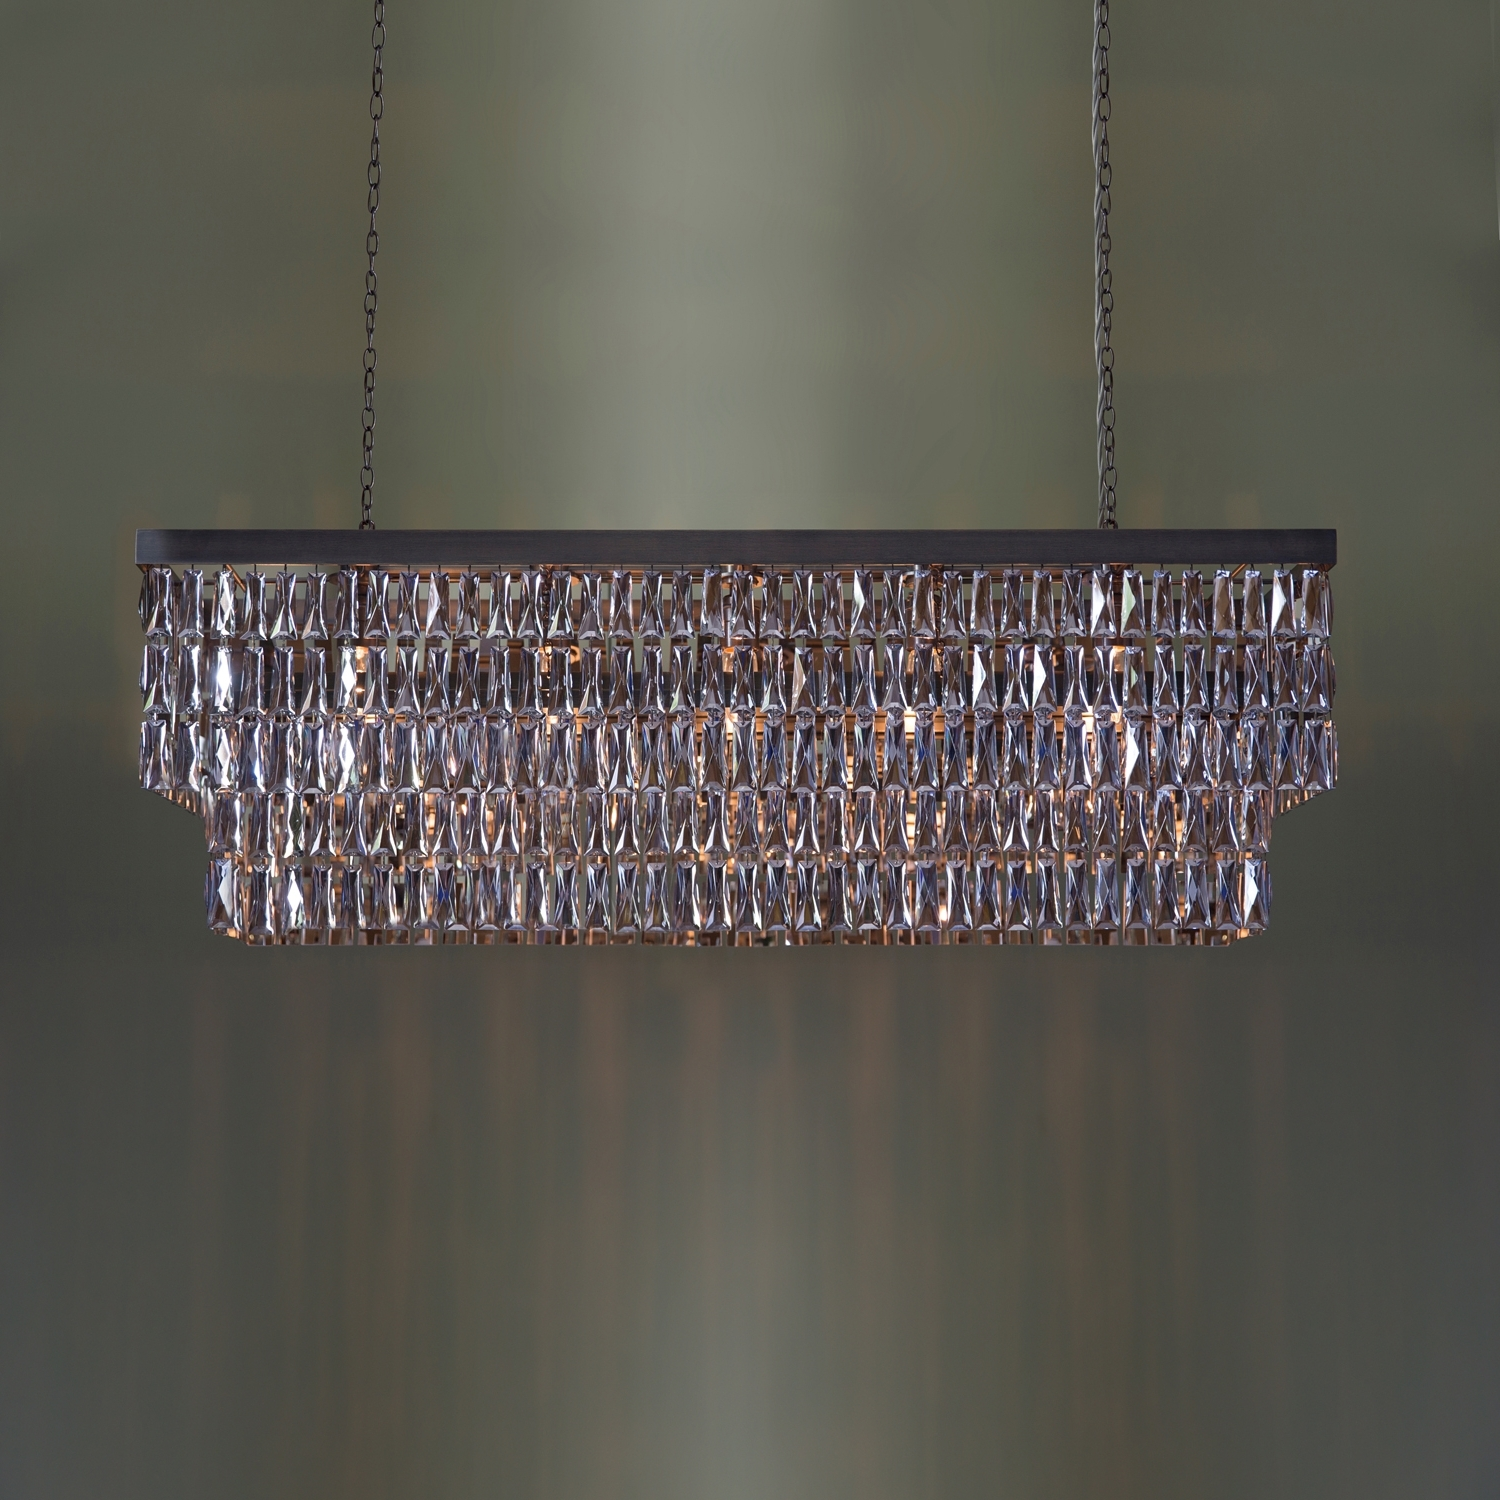 Famous Mirrored Crystal Rectangular Chandelier – Tigermoth Lighting With Regard To Mirrored Chandelier (View 13 of 15)